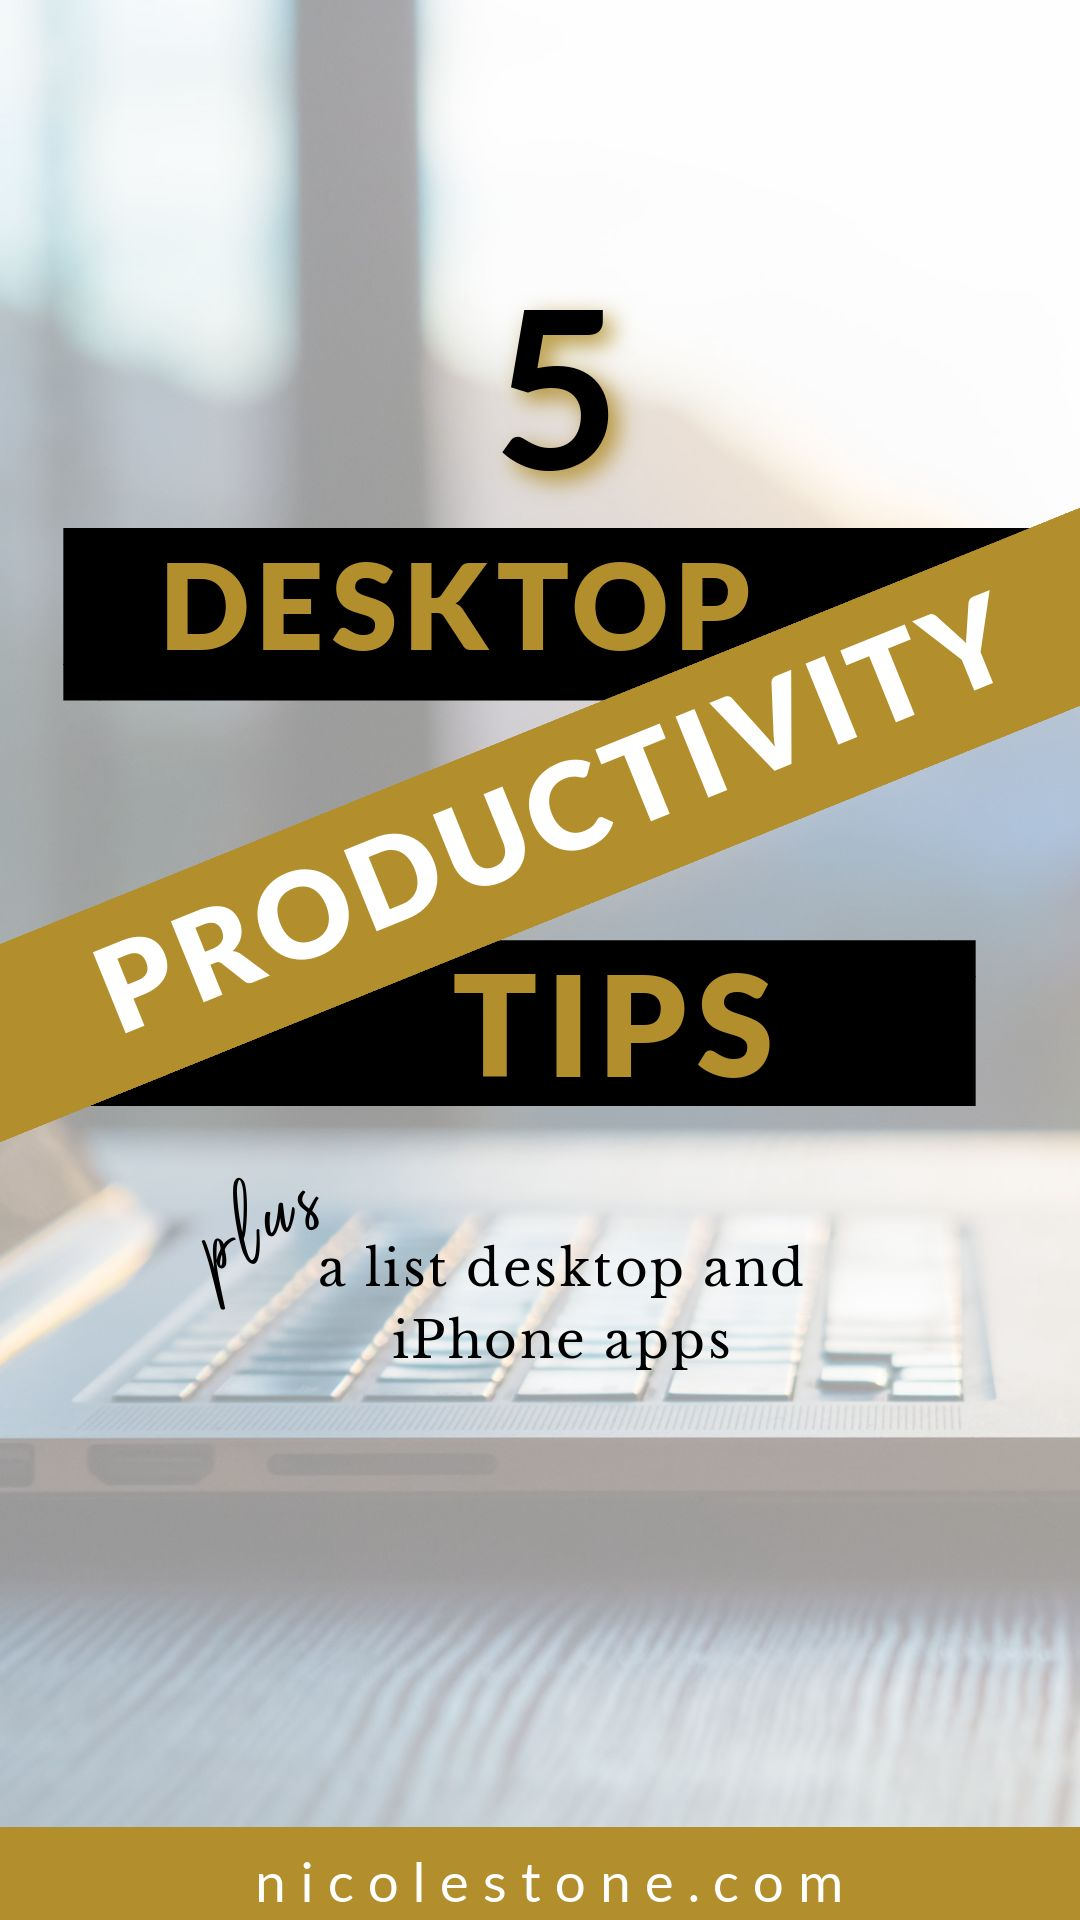 5 Ridiculously Simple Productivity Tips that Will Sky-Rocket Your Desktop Productivity. 5 Must Have Desktop and Iphone Apps INCLUDED! Learn how to be more productive (trust me, it feels great!). #productivity #productive #career #minimalism